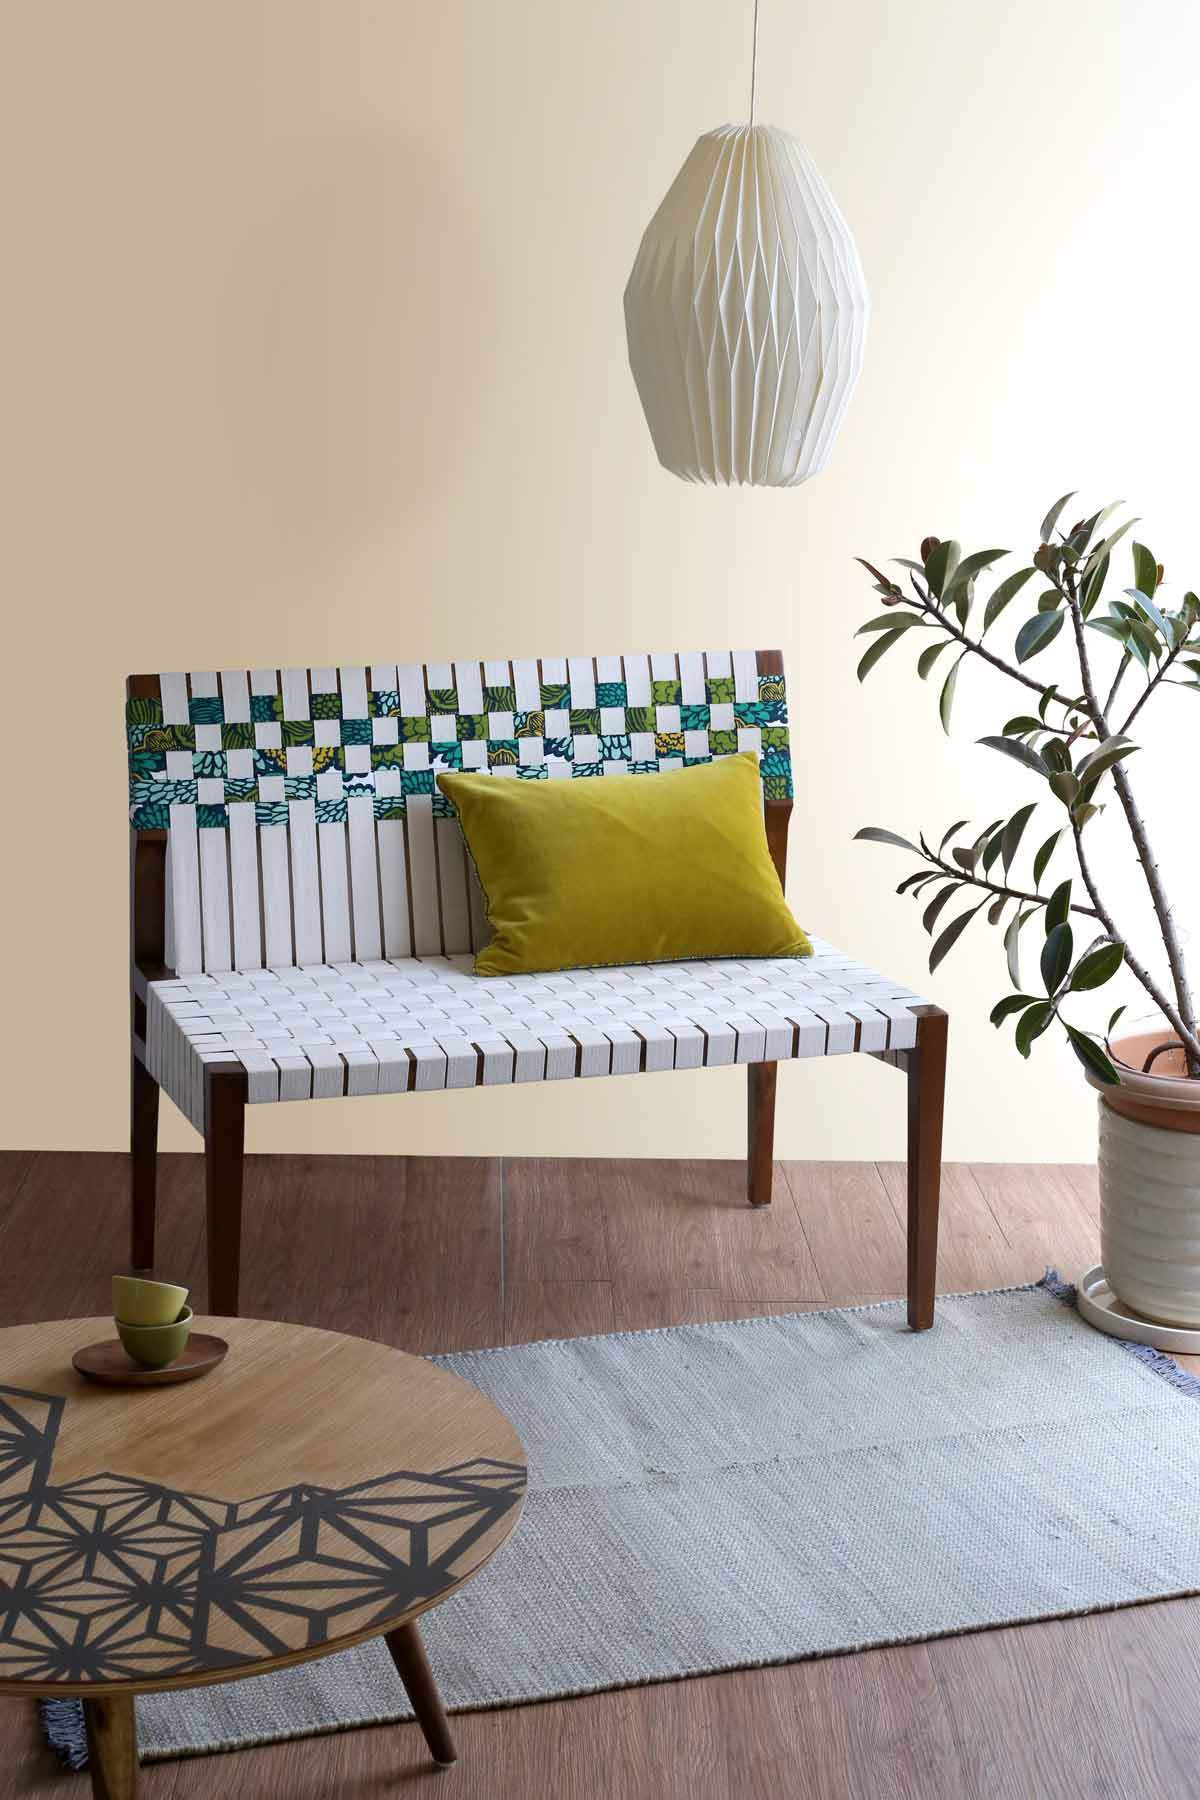 Groovy Majuli 2 Seater Chair Sofa Freedom Tree Forskolin Free Trial Chair Design Images Forskolin Free Trialorg